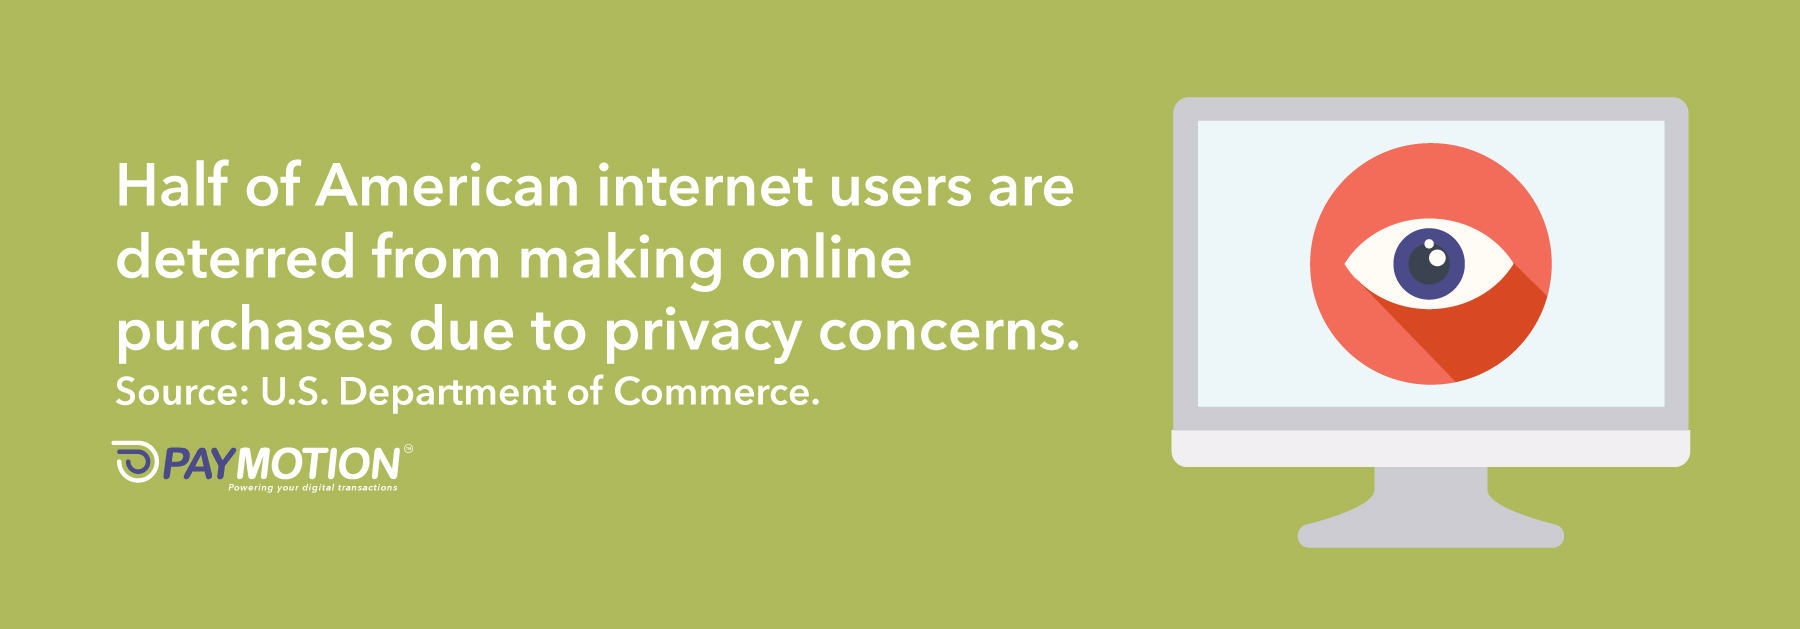 Half of American internet users are deterred from making online purchases due to privacy concerns.